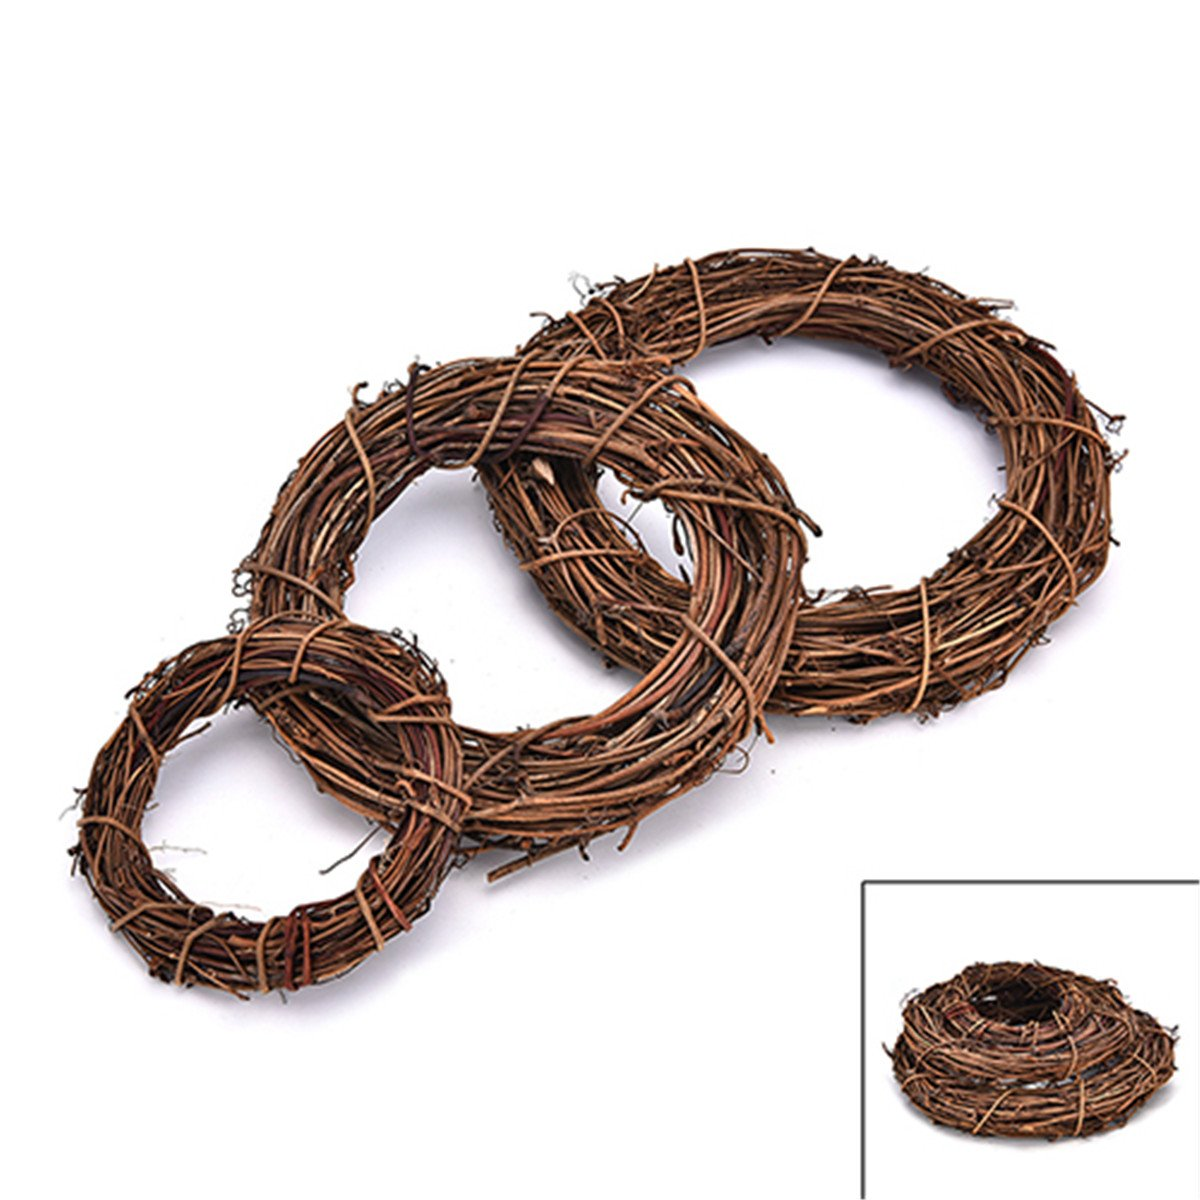 4 inches Natural Grapevine Wreath, DIY Craft Grapevine Wreath for Front Door Home Party Decoration TM